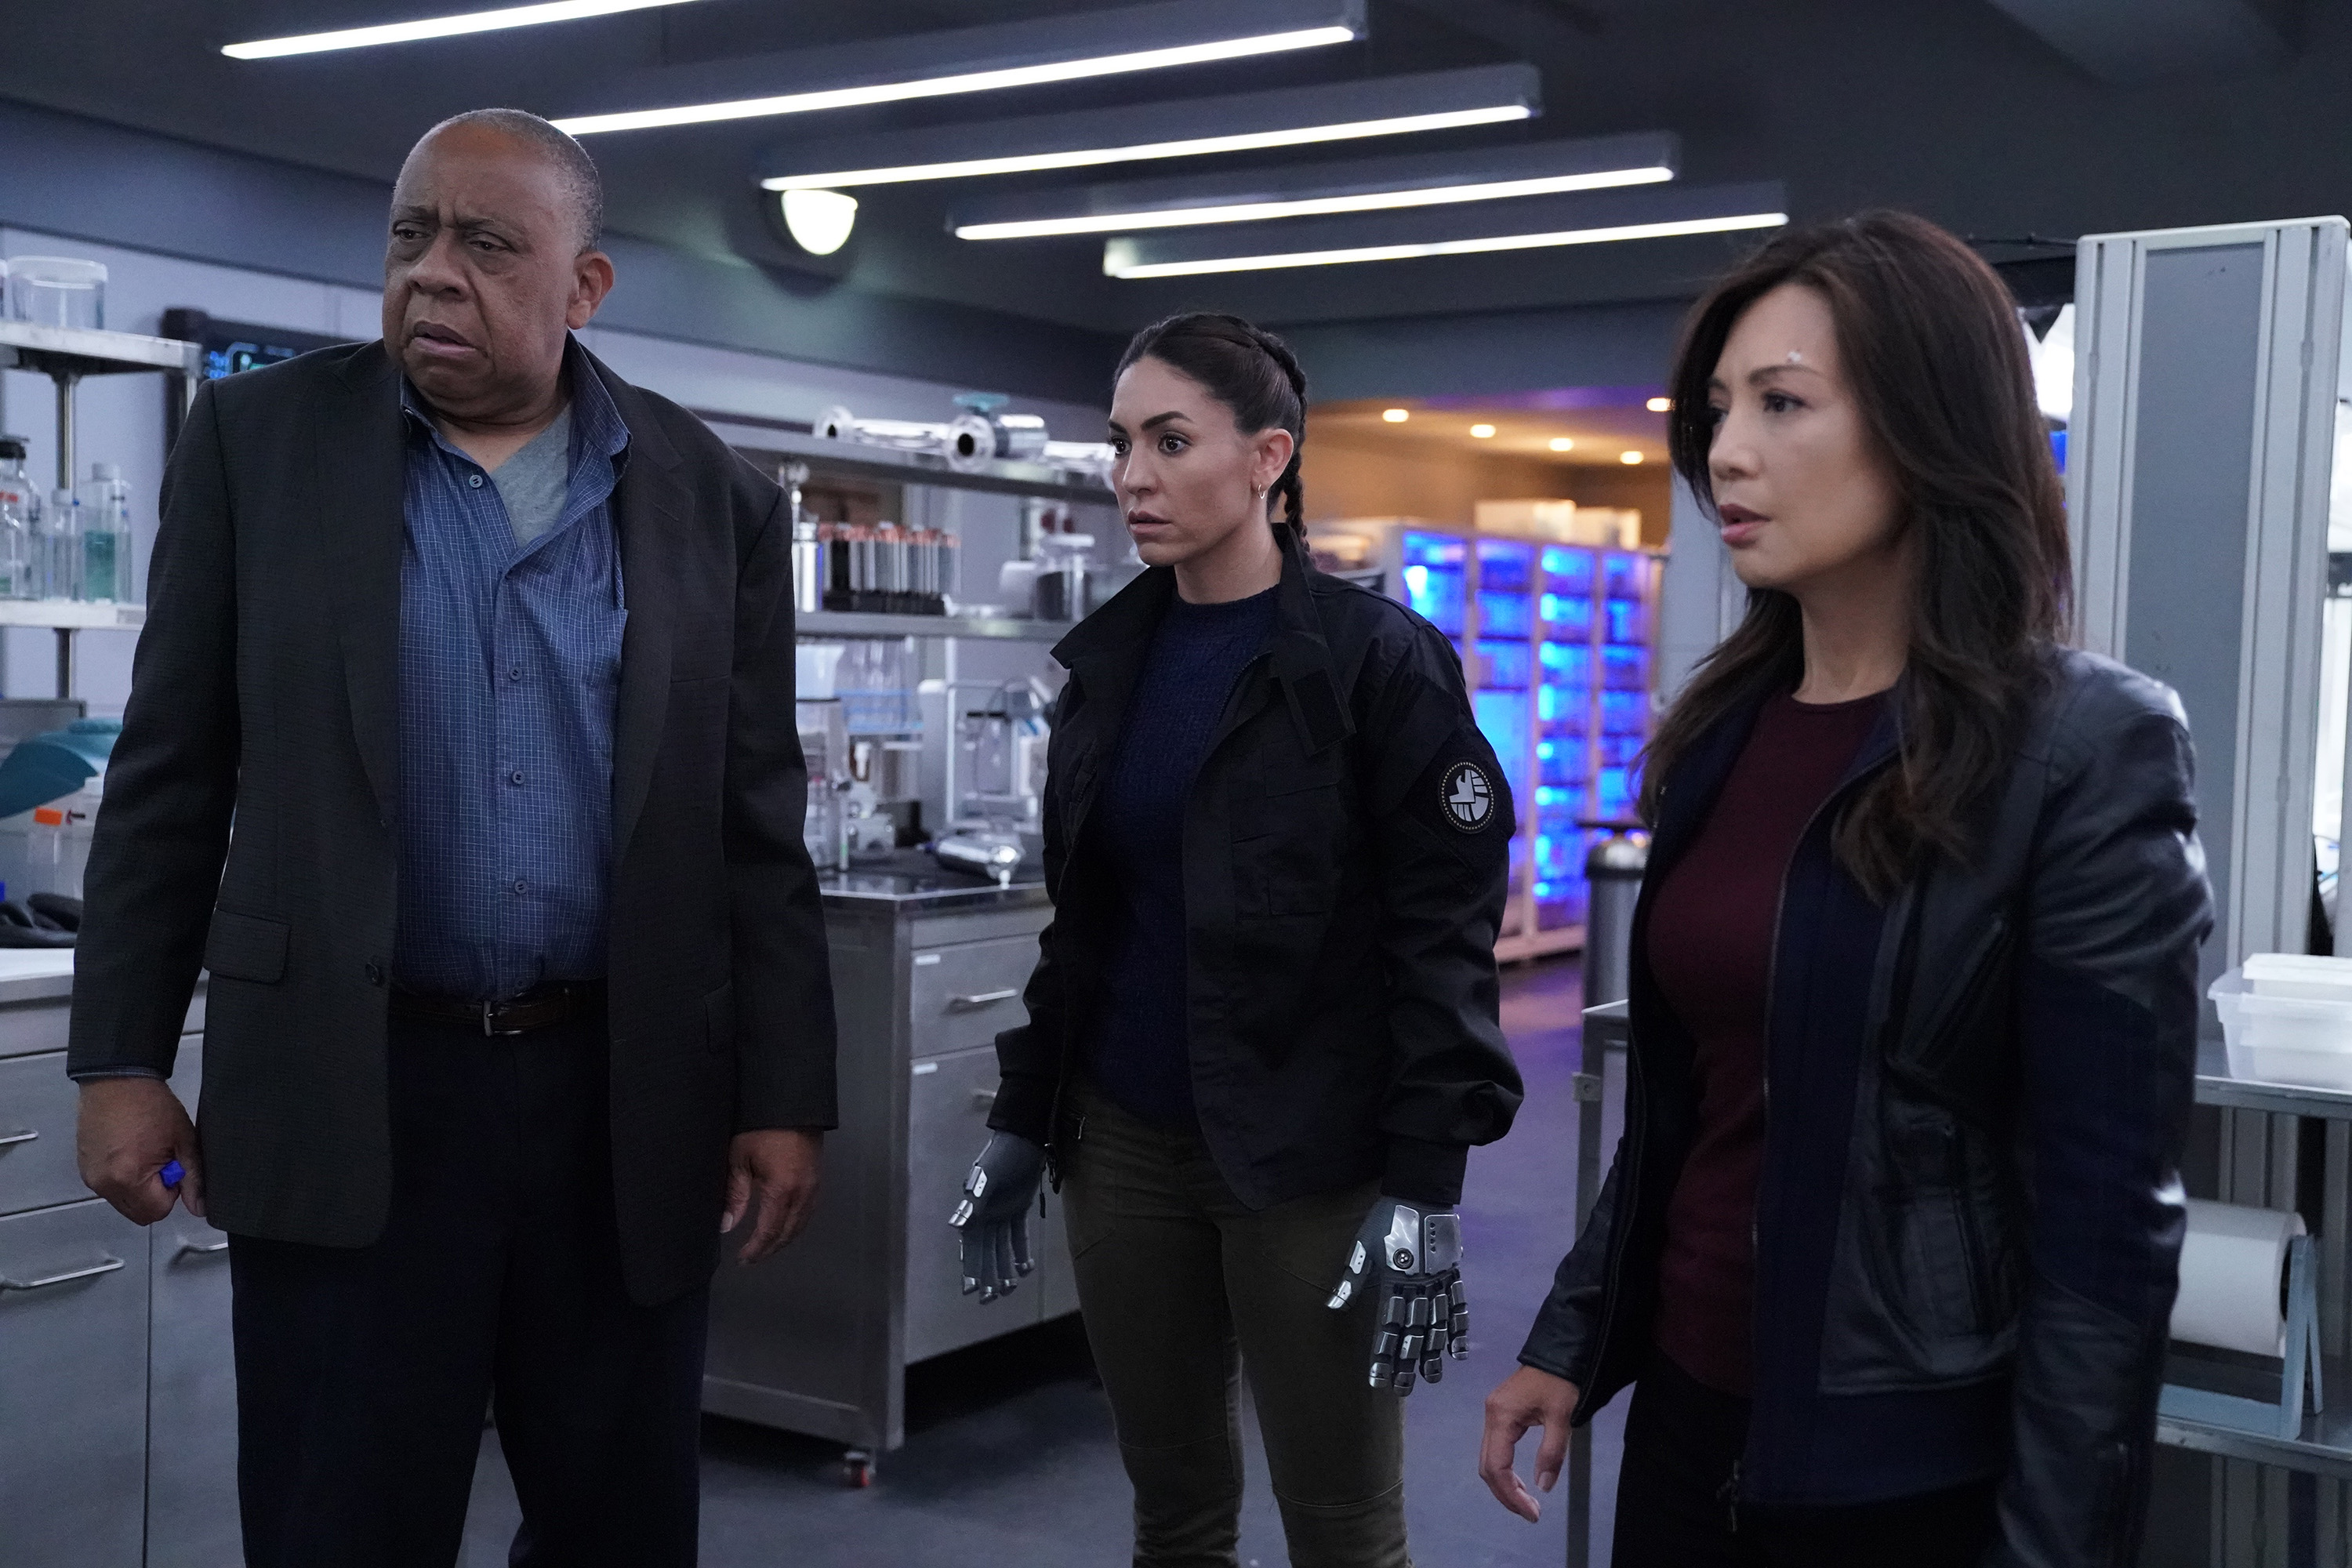 Marvel's Agents of S.H.I.E.L.D. Season 6 1